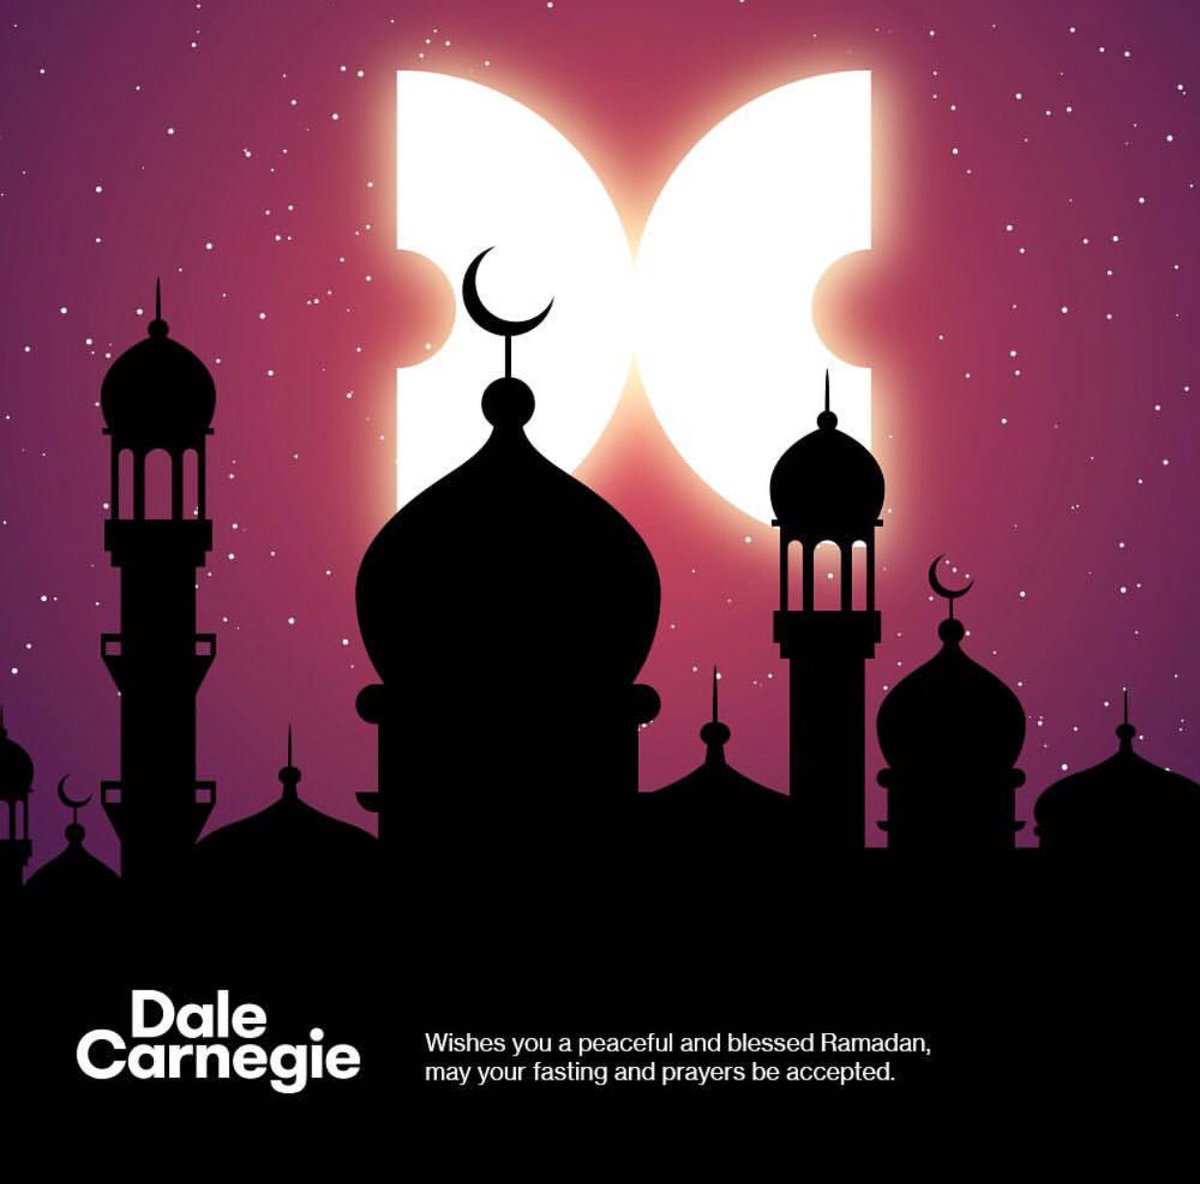 Sally A Smith's photo on #Ramadan